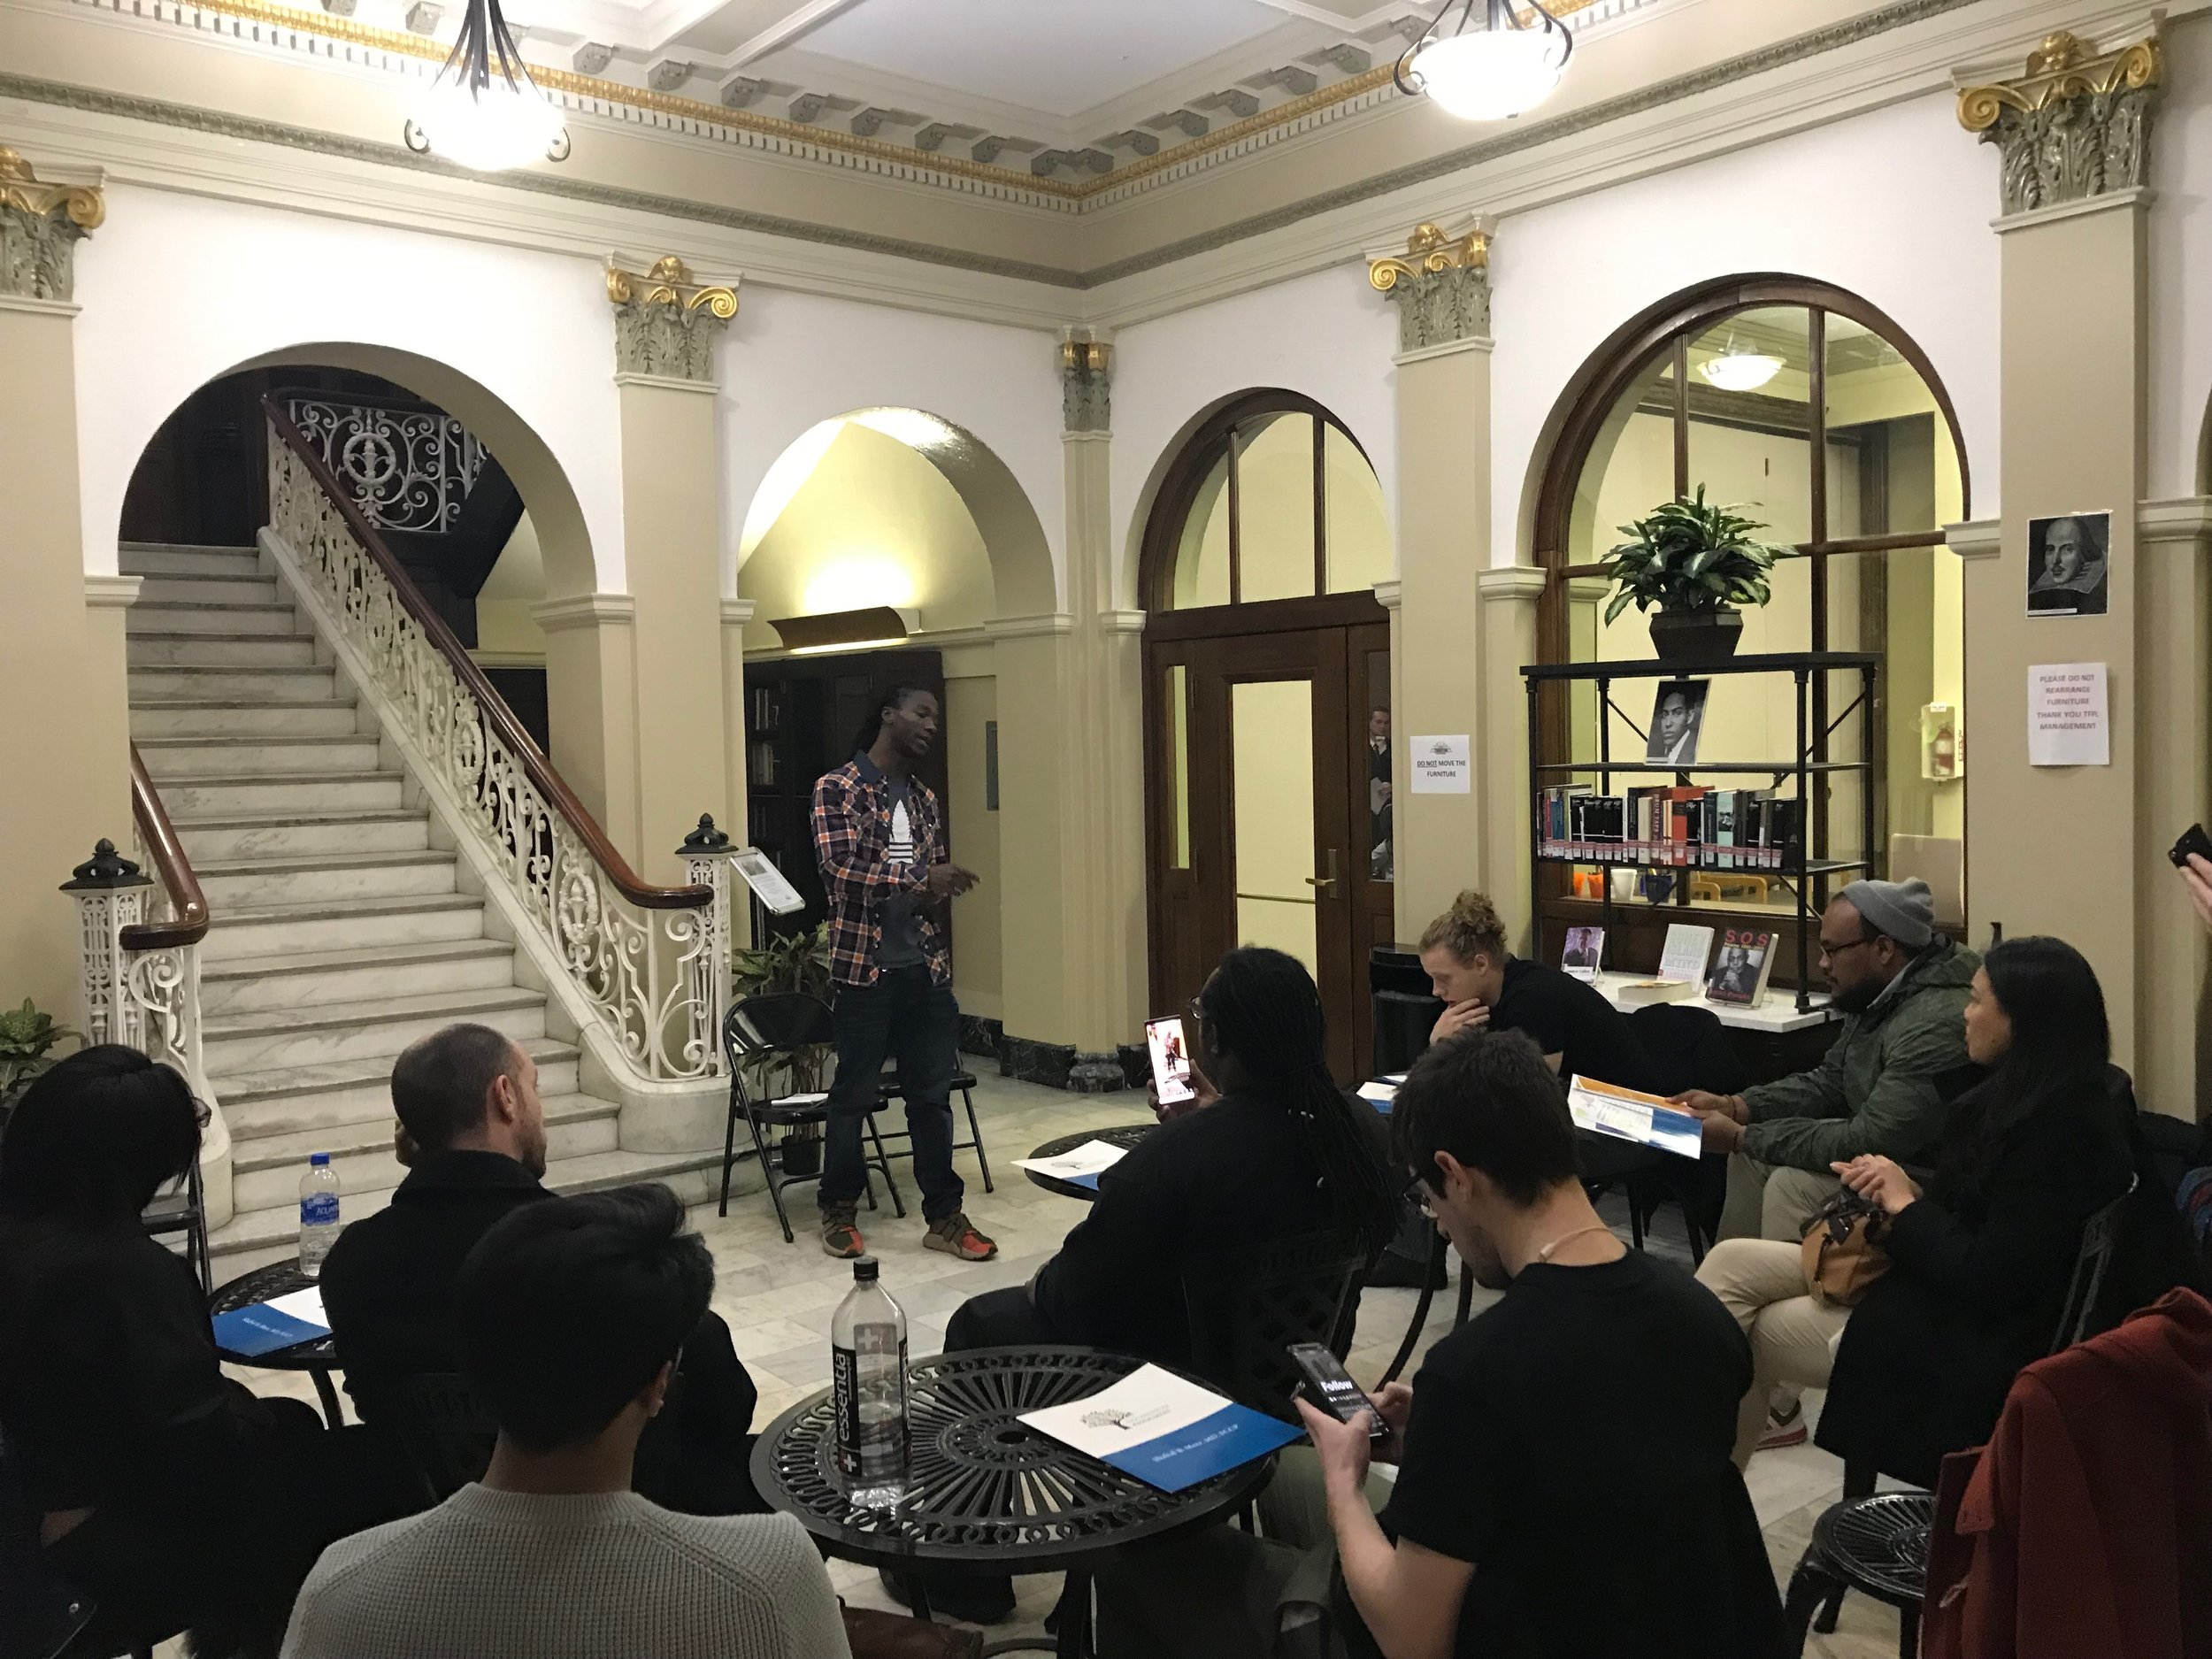 Doctors, nurses, patients, opioid addicts, lobbyists, pharmacists, and journalists discuss how cannabis addresses misinformation in the Trenton community. - This is a free monthly meeting held at the Trenton Library the first Wednesday of each month.